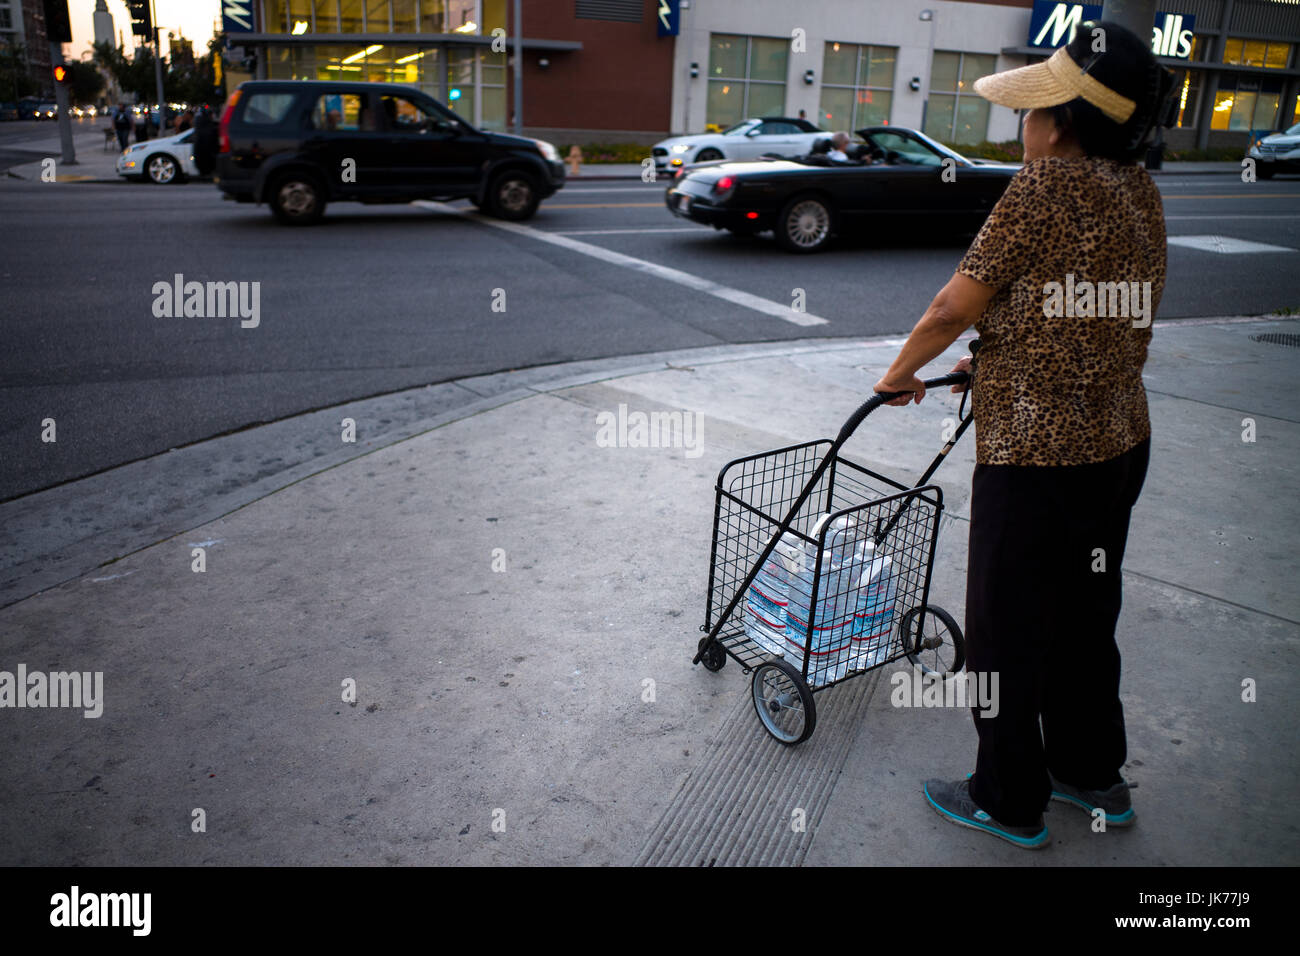 During a heat wave, an older immigrant woman transports a cart of water bottles at an intersection in Los Angeles, - Stock Image